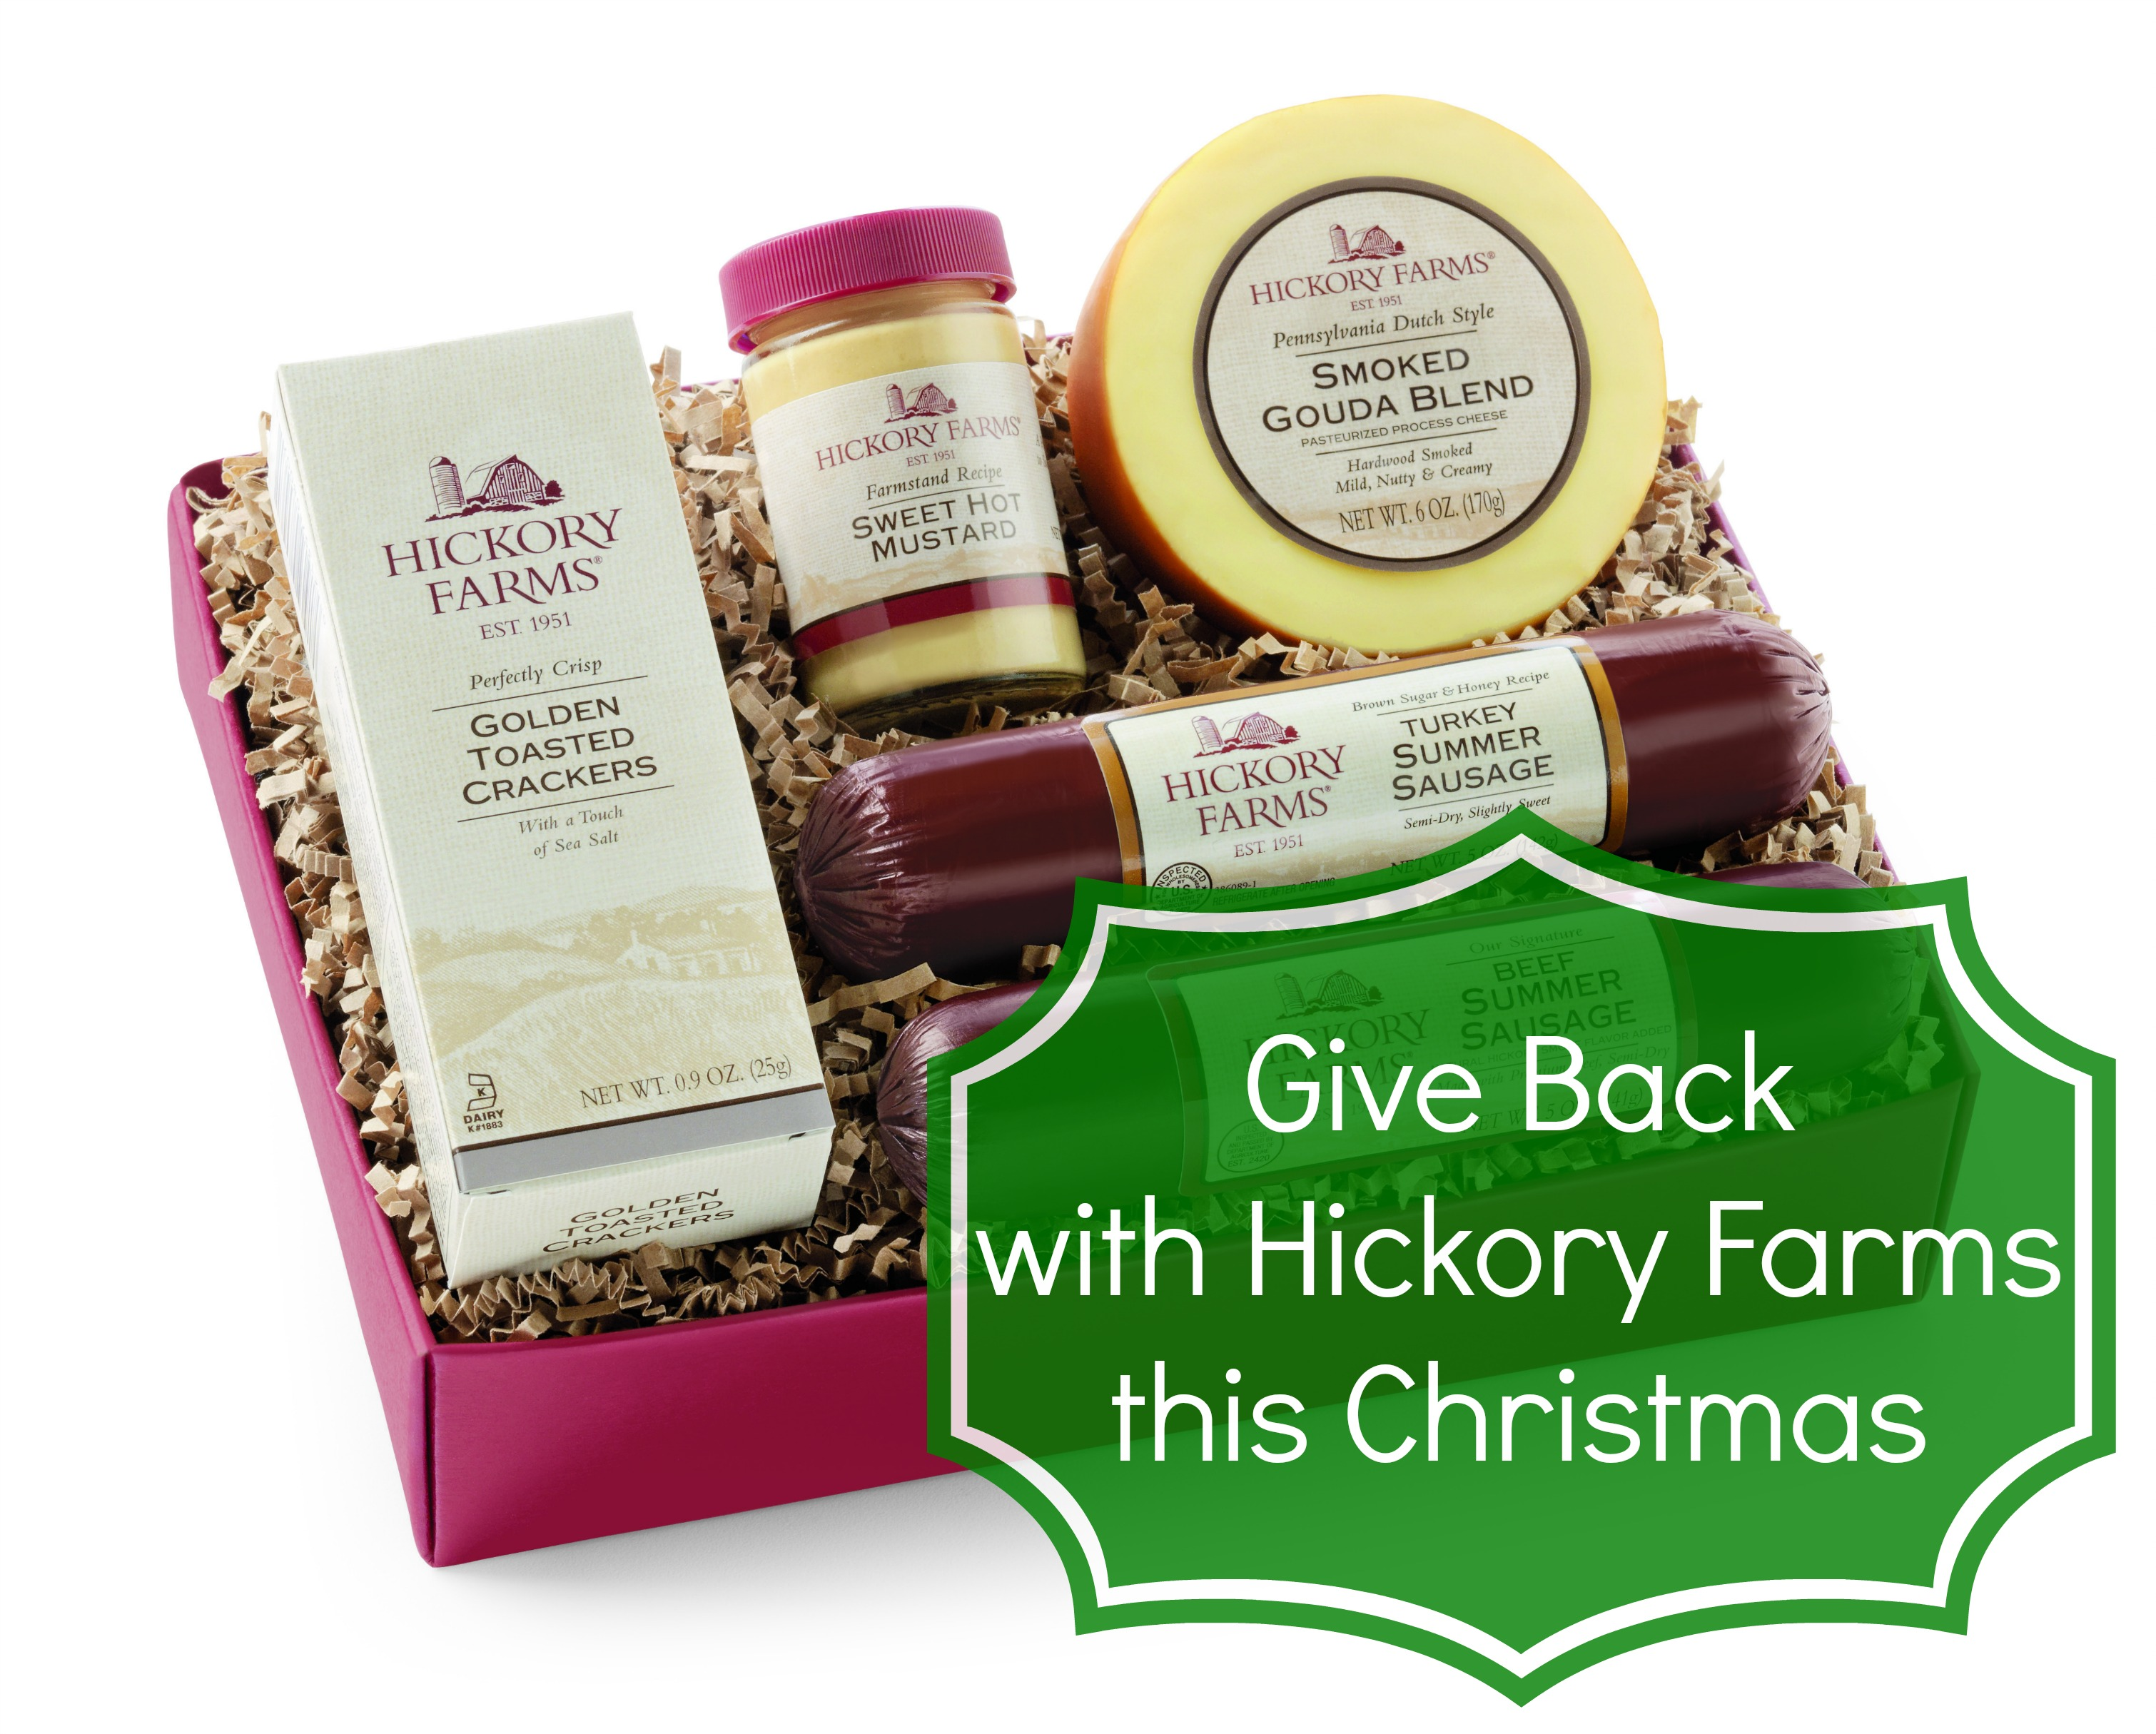 Give Back with Hickory Farms this Christmas - A Little Craft In Your Day